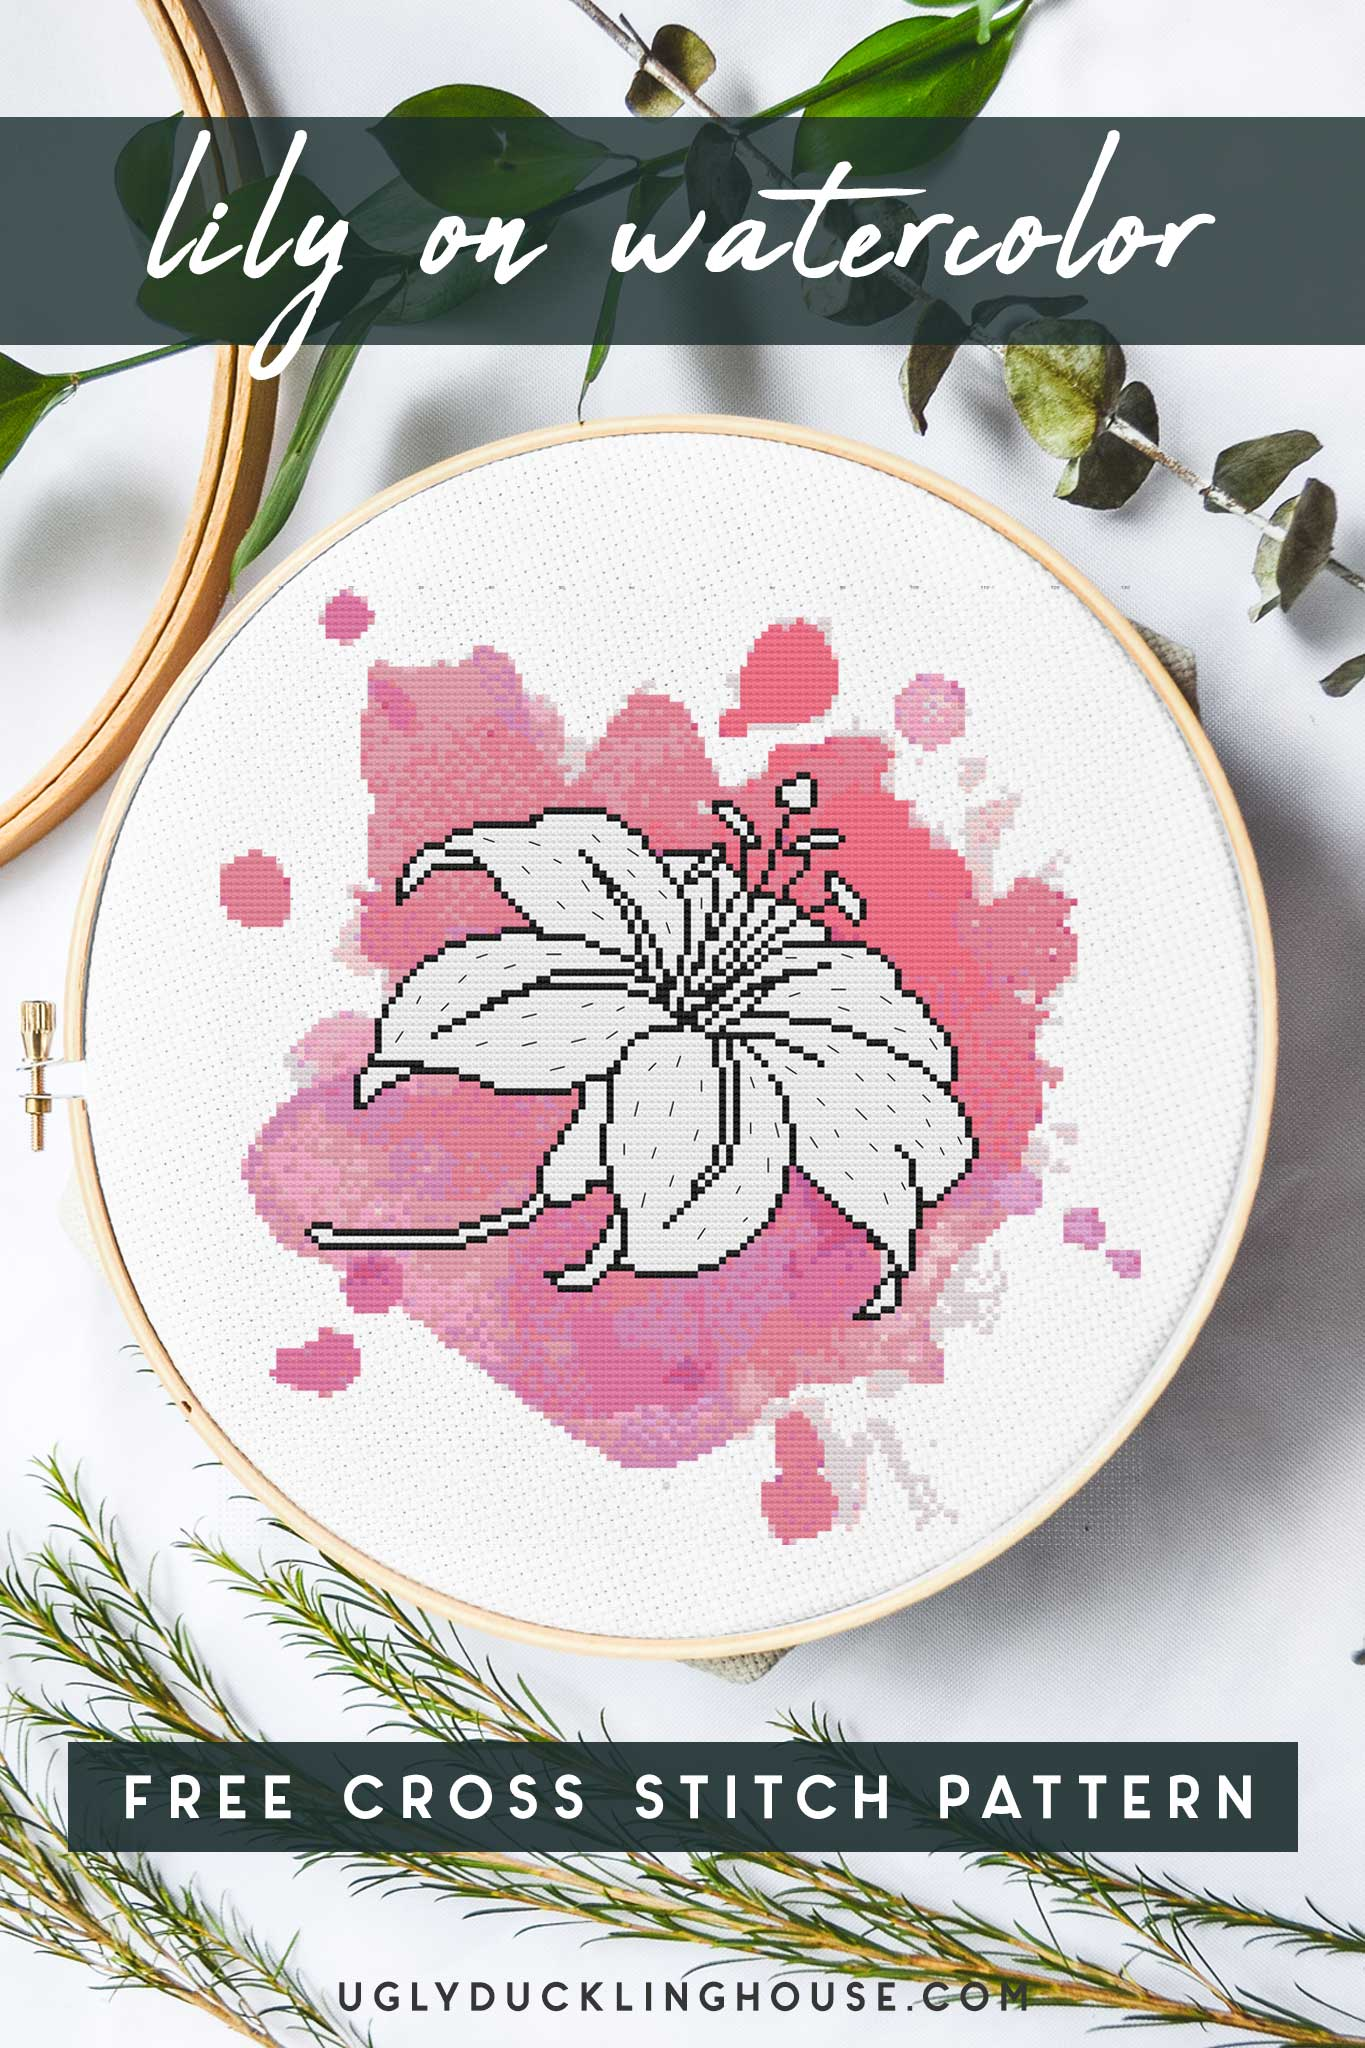 lily on watercolor cross stitch